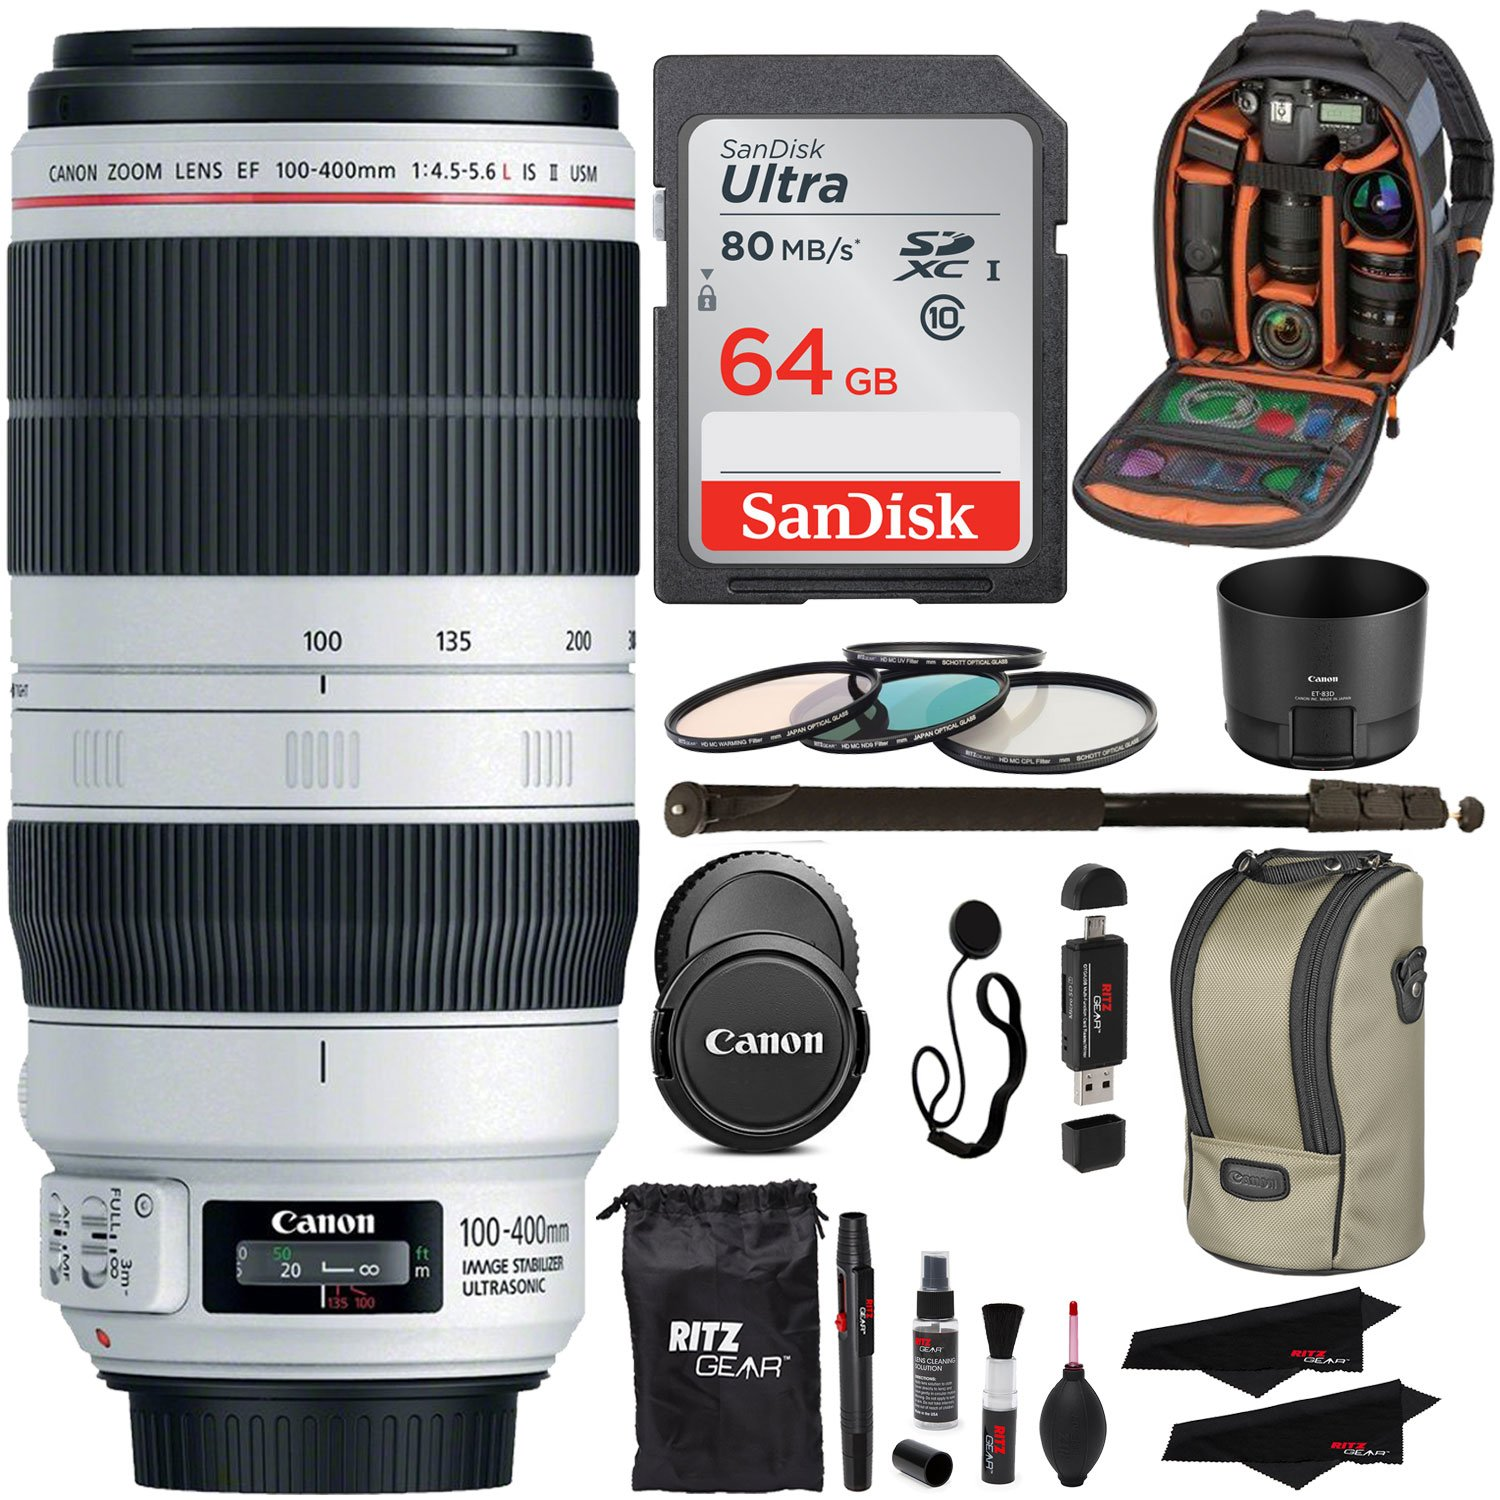 Canon EF 100-400mm f/4.5-5.6L IS II USM Lens + Sandisk 64GB + Ritz Gear USB Reader / Writer + 72'' Monopod + Polaroid Optics 77mm 4 Piece Filter Set Kit + Polaroid Accessory Bundle